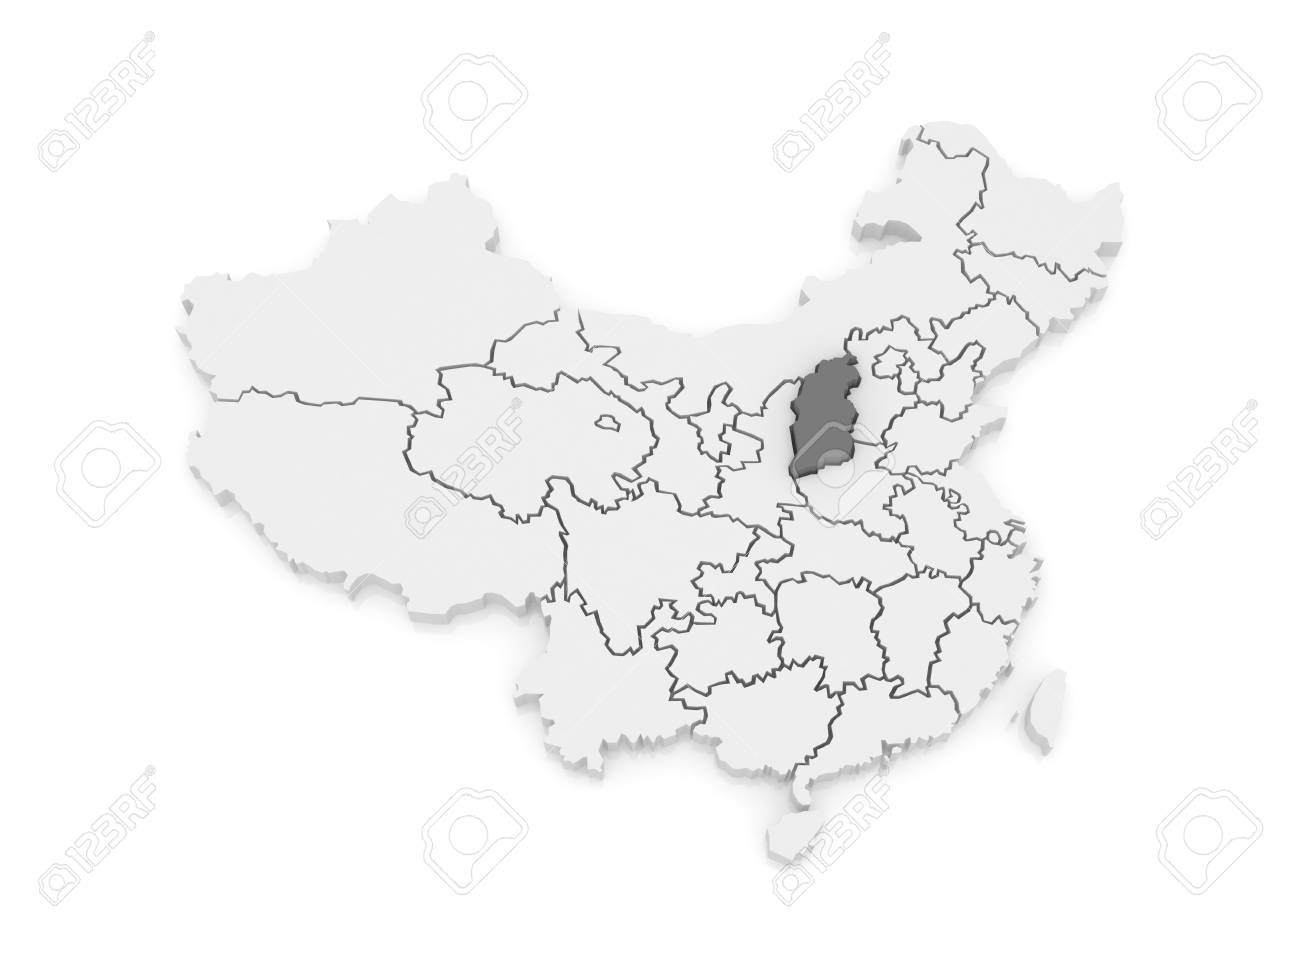 Shanxi China Map.Map Of Shanxi China 3d Stock Photo Picture And Royalty Free Image